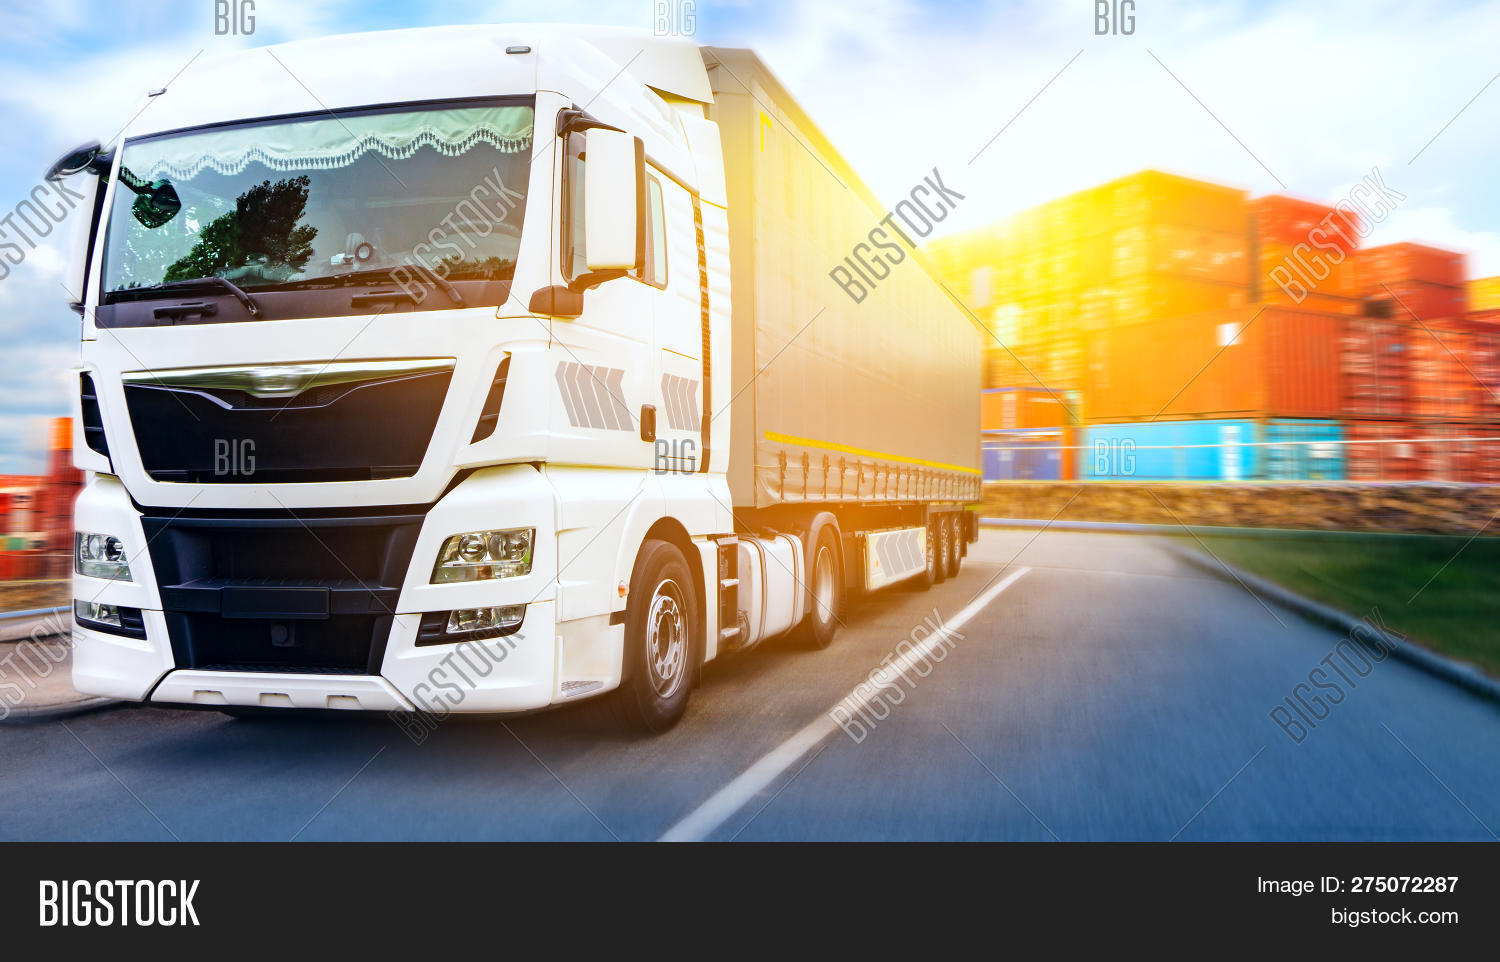 abstract,asphalt,automobile,big,blur,business,busy,car,cargo,clouds,delivery,driving,fast,fingers,freight,fuel,grass,heavy,high,highway,industry,landscape,line,logistics,long,lorry,middle,motion,moving,perspective,road,shipping,sky,speed,stock,storage,supply,traffic,trailer,transport,transportation,truck,trucking,vehicle,view,way,white